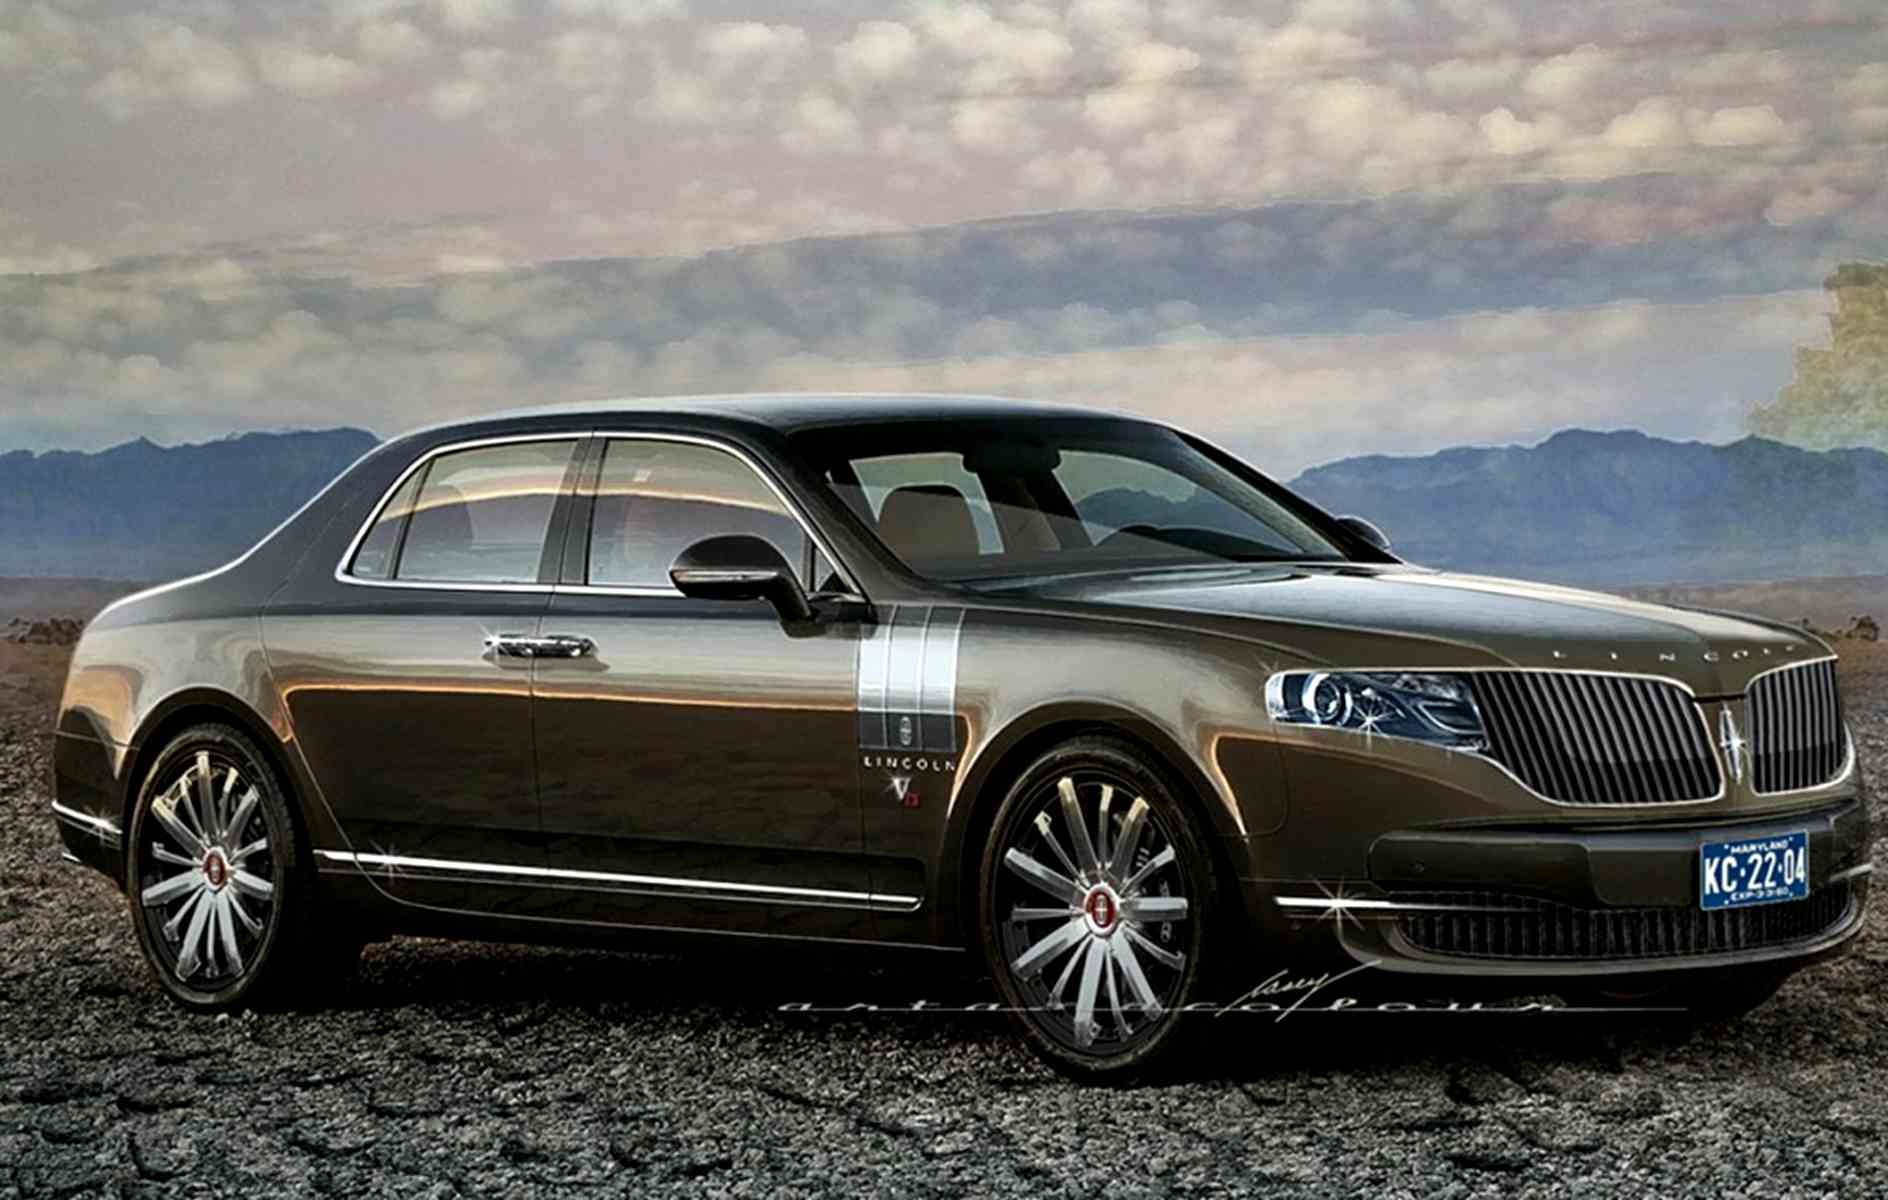 2016 Lincoln Continental Cool Car Wallpapers Other Cars